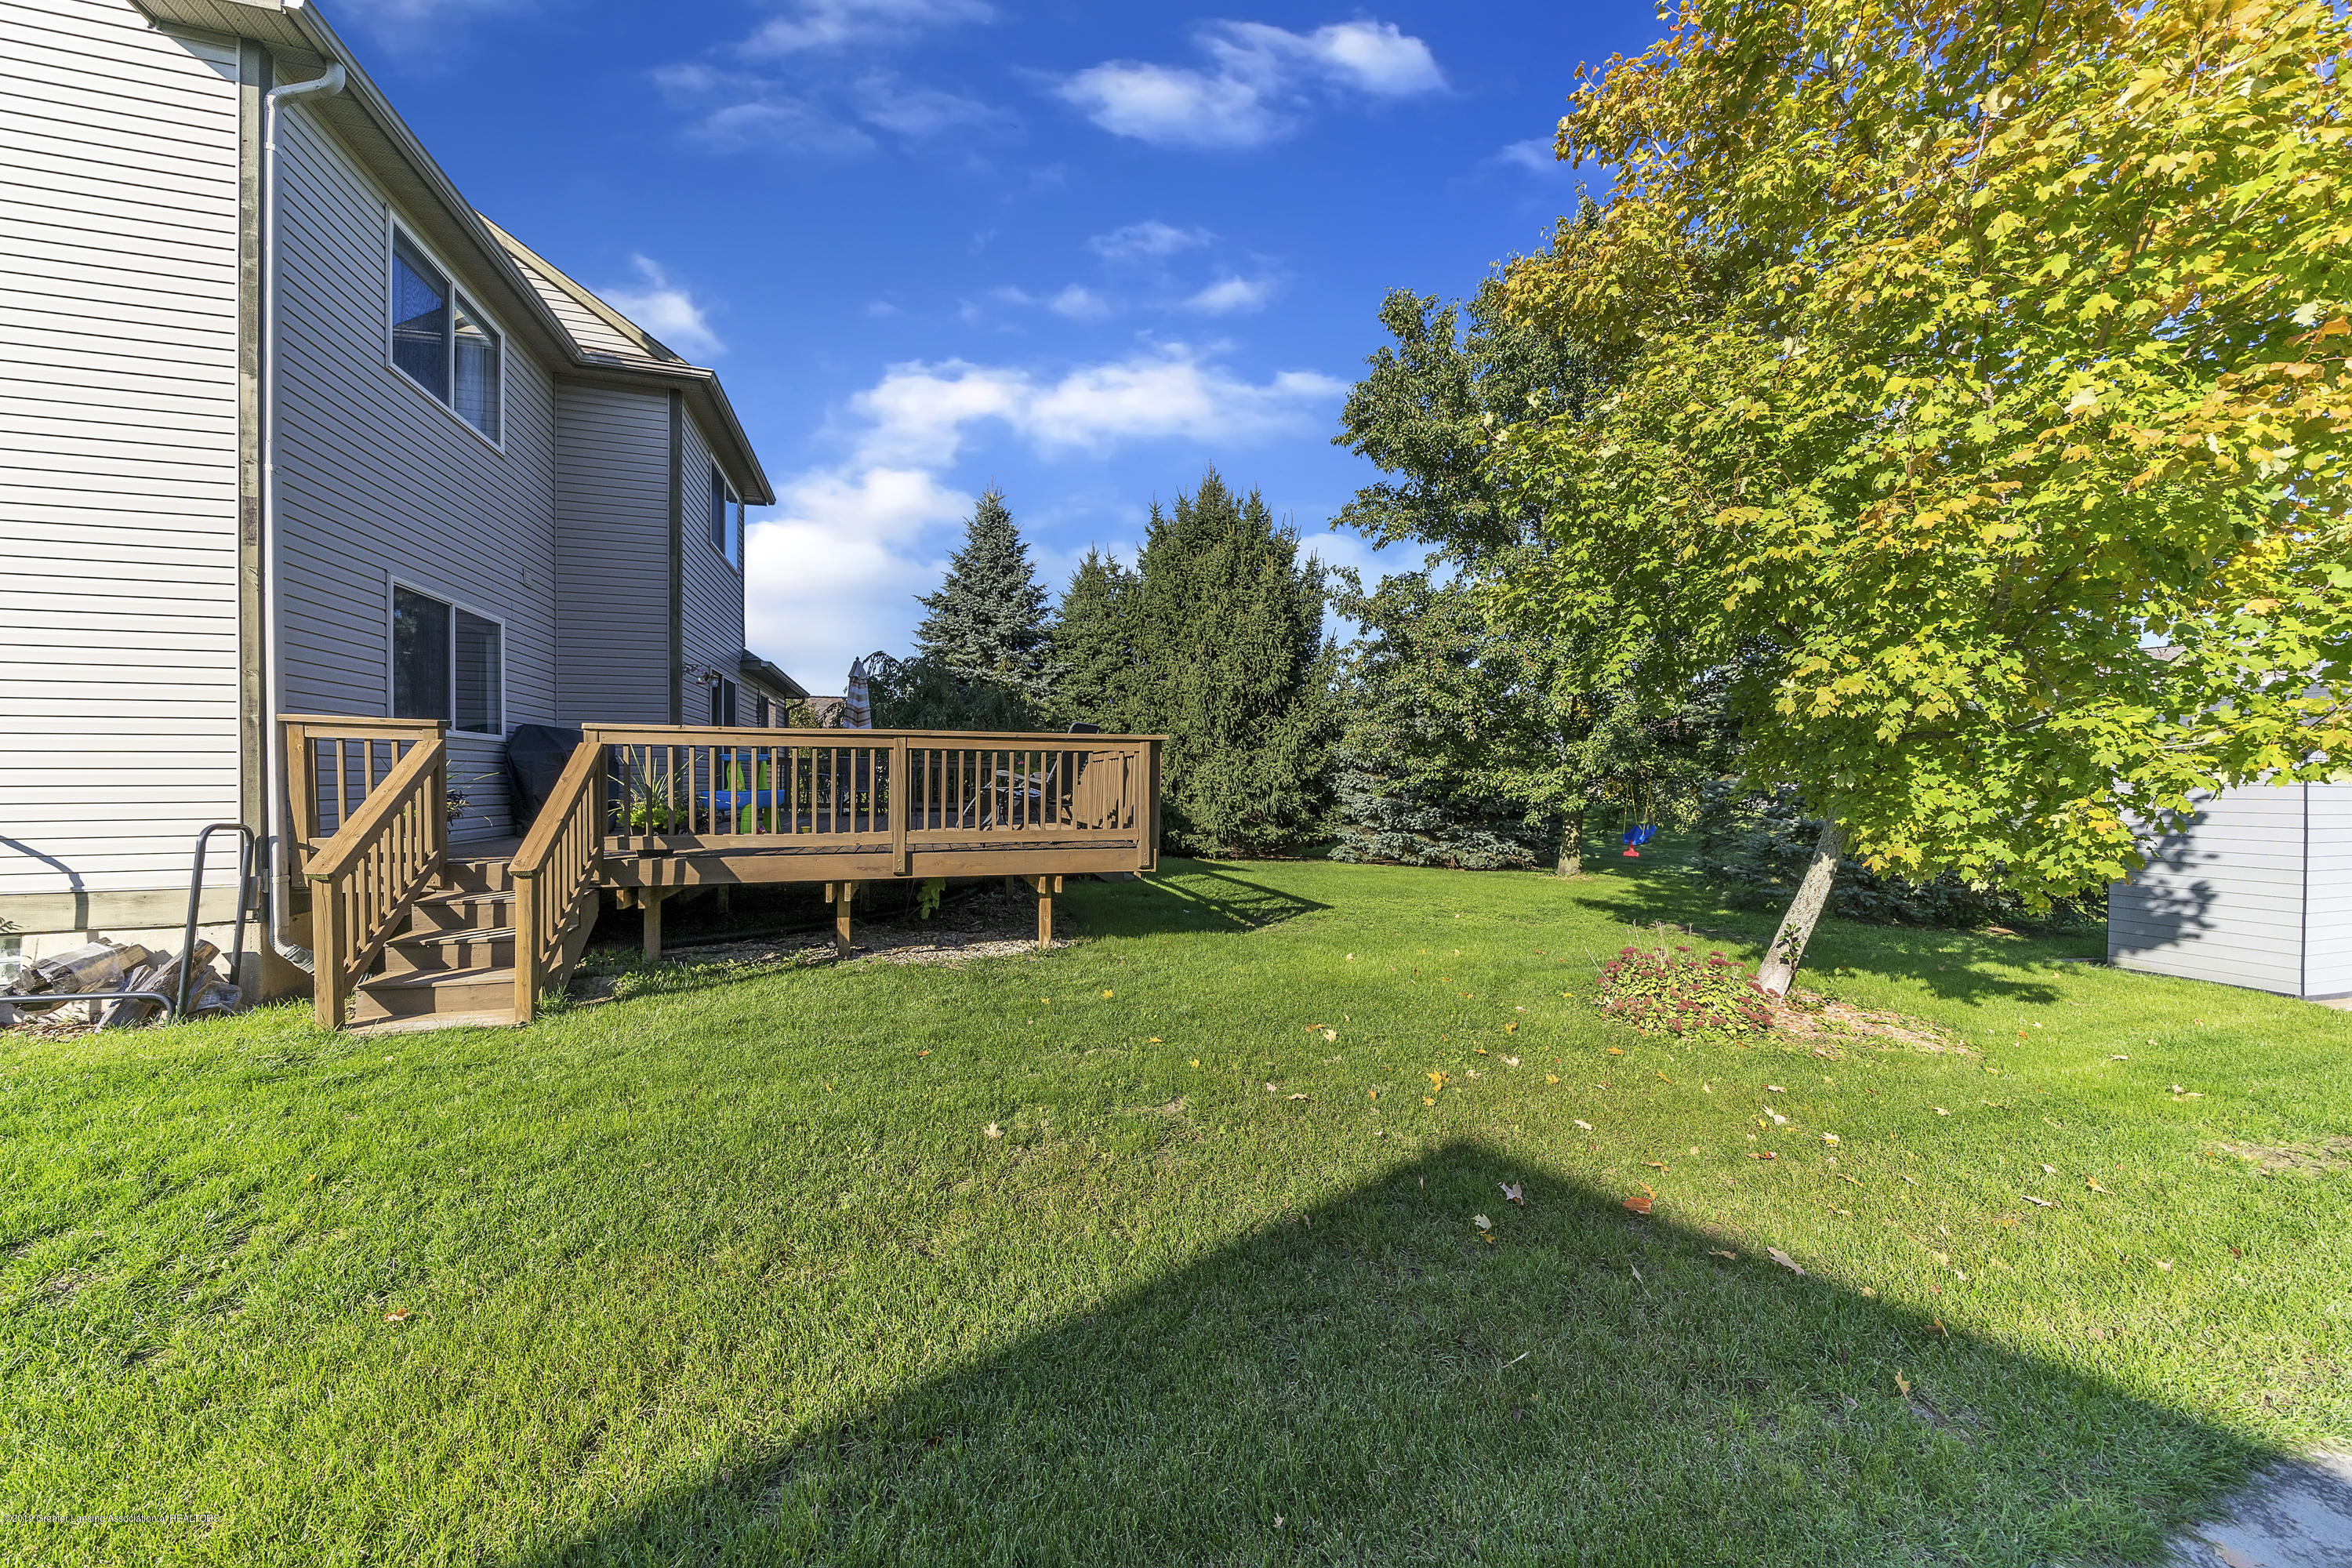 1258 Sumac Ln - 1258-Sumac-WindowStill-Real-Estate-Photo - 30